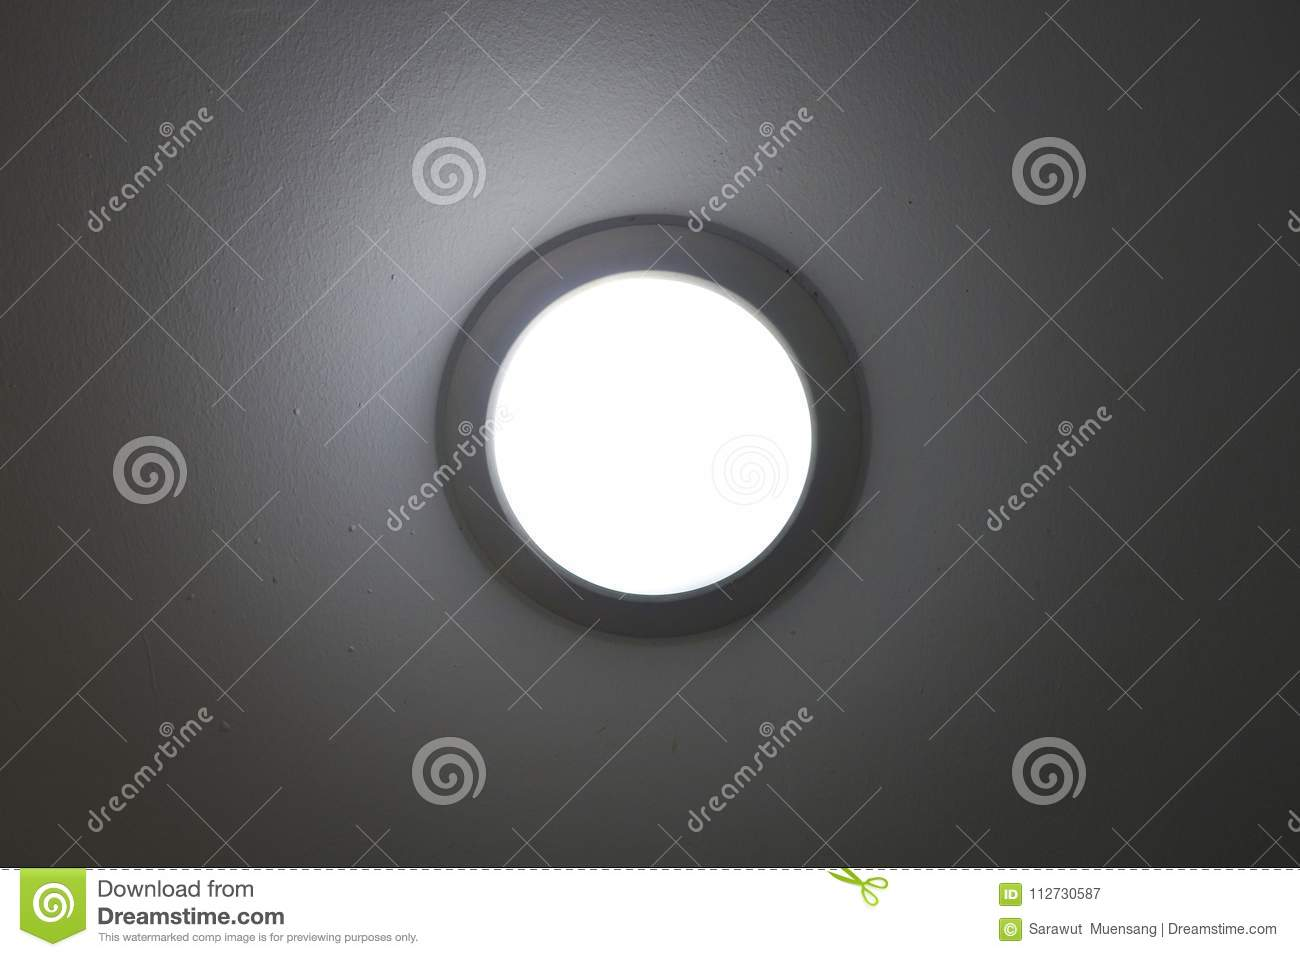 Pot Light Recessed Lighting In Ceiling Tile Stock Image